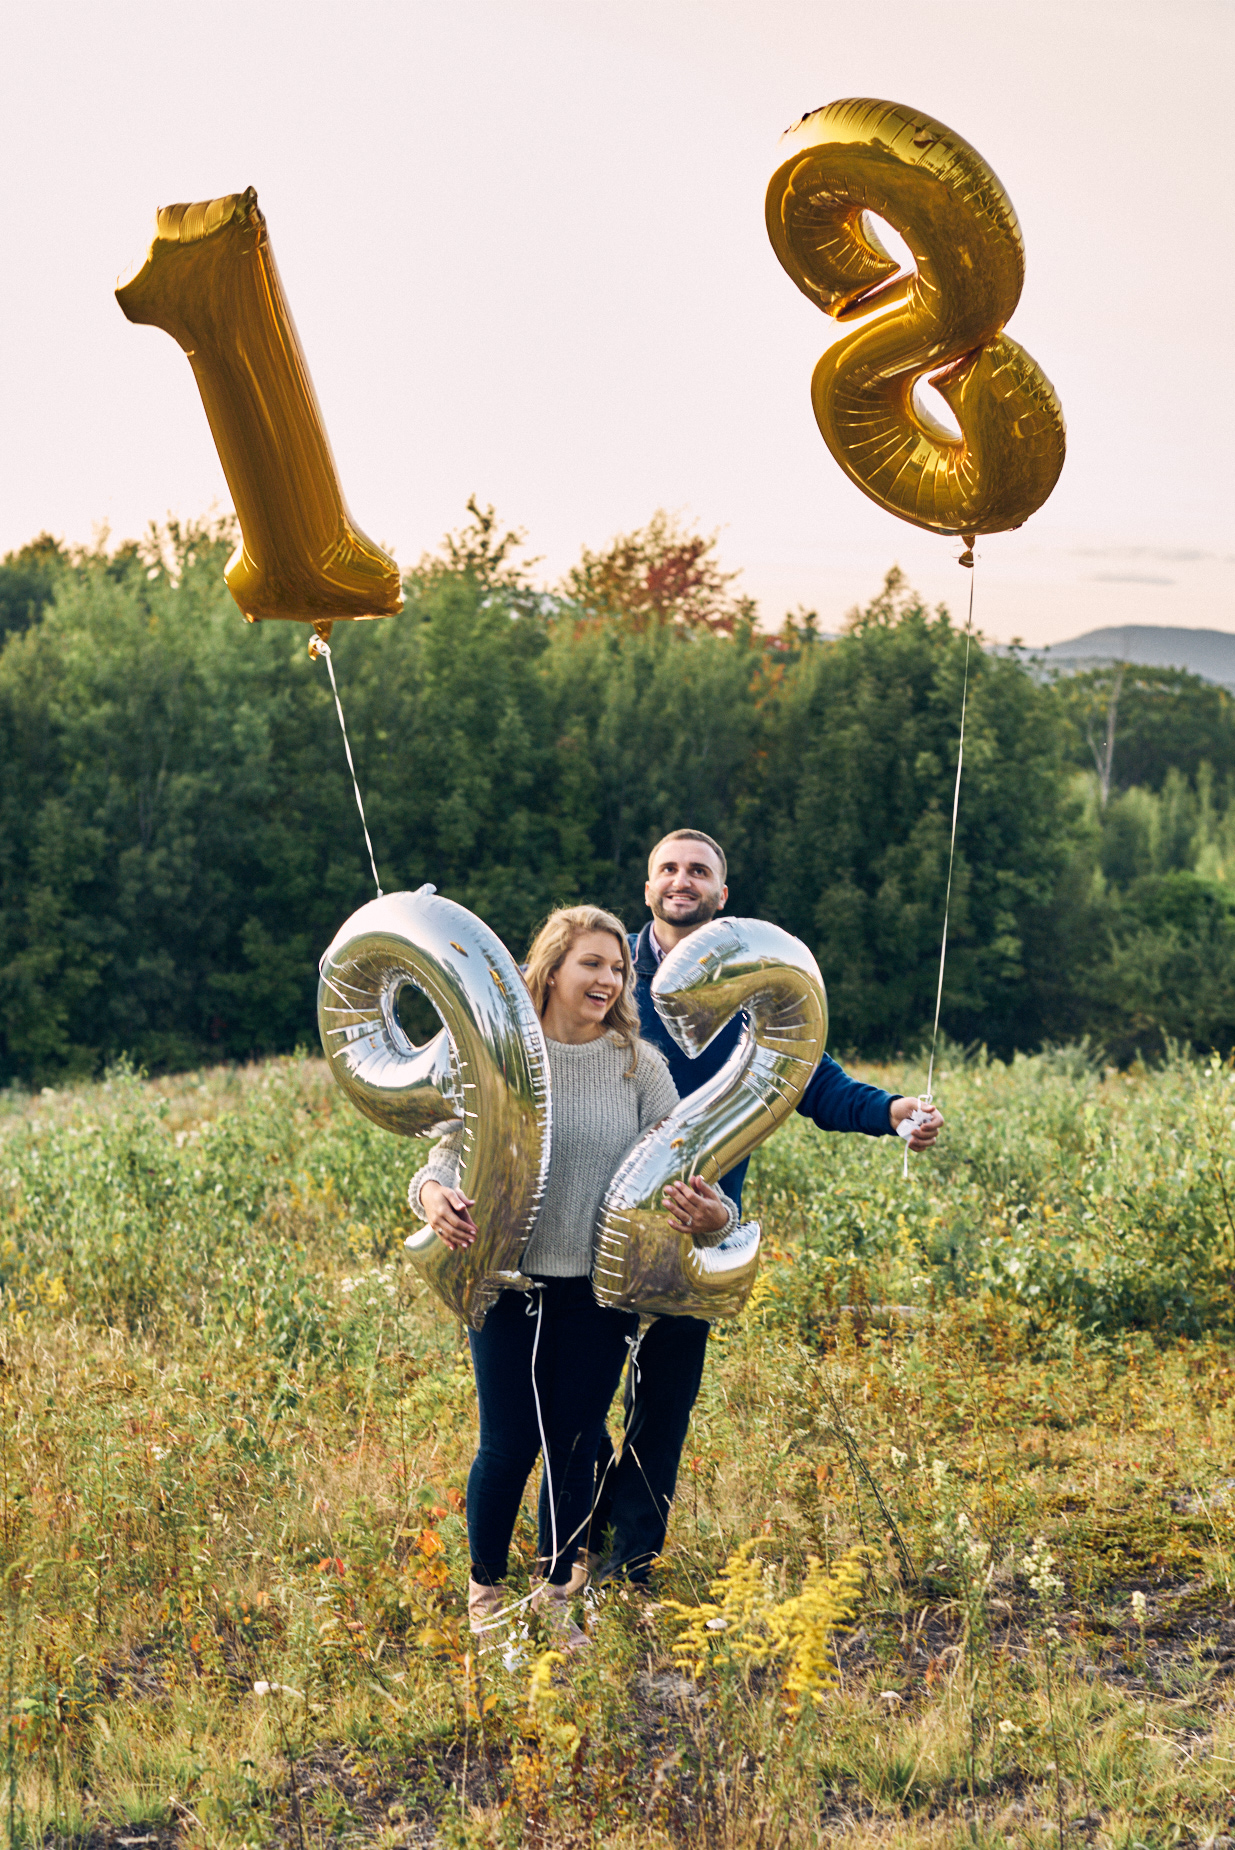 - These two had a great idea (directly from Pinterest!) and brought balloons with their wedding date to our engagement session! I absolutely fell in love with their plan but mother nature had another idea for us. The wind prevented us from getting the 'perfect' shot but we sure did have fun trying!